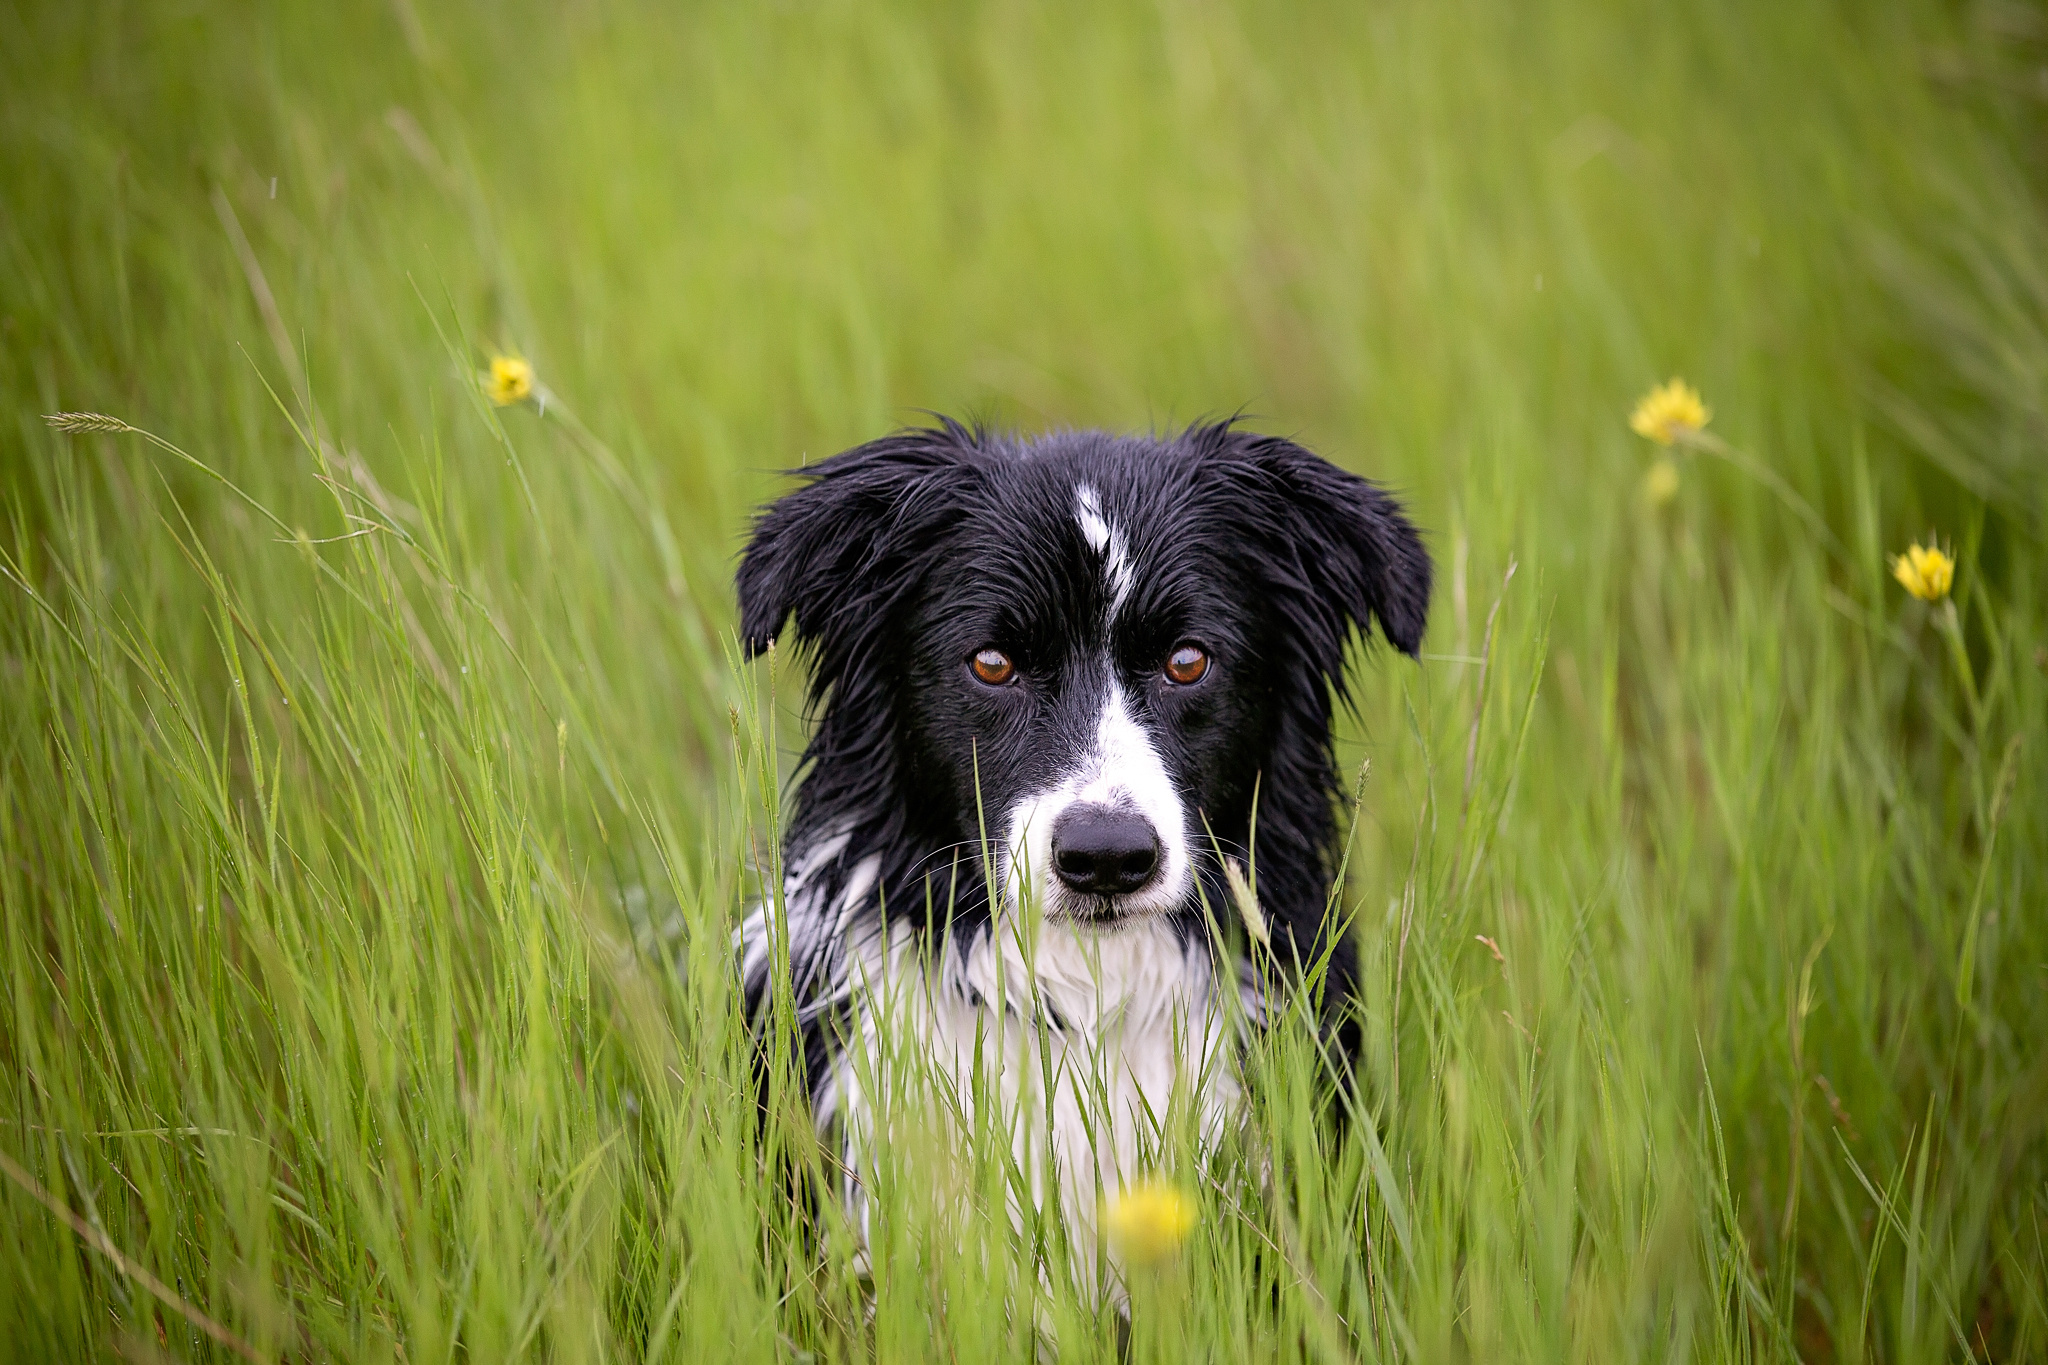 154274 download wallpaper Animals, Dog, Muzzle, Grass, Spotted, Spotty, Wet screensavers and pictures for free